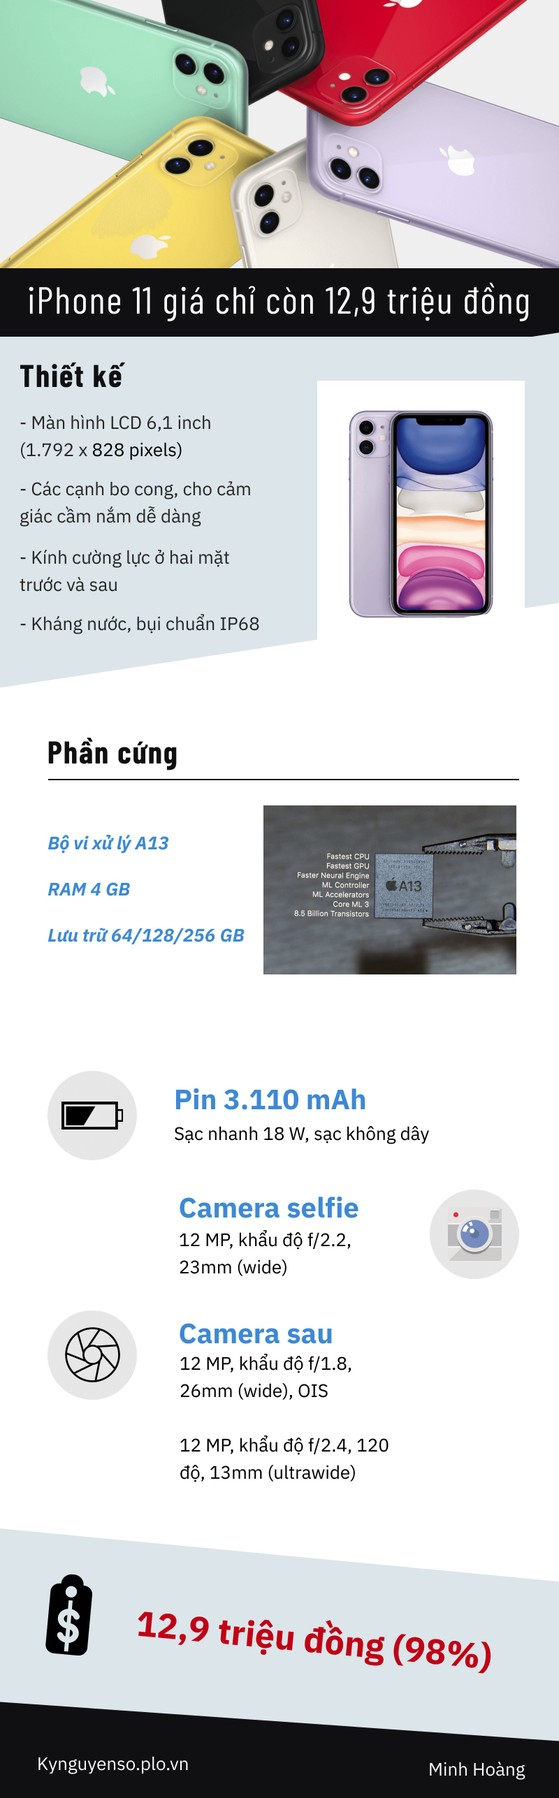 infographic-iphone-11-kynguyenso